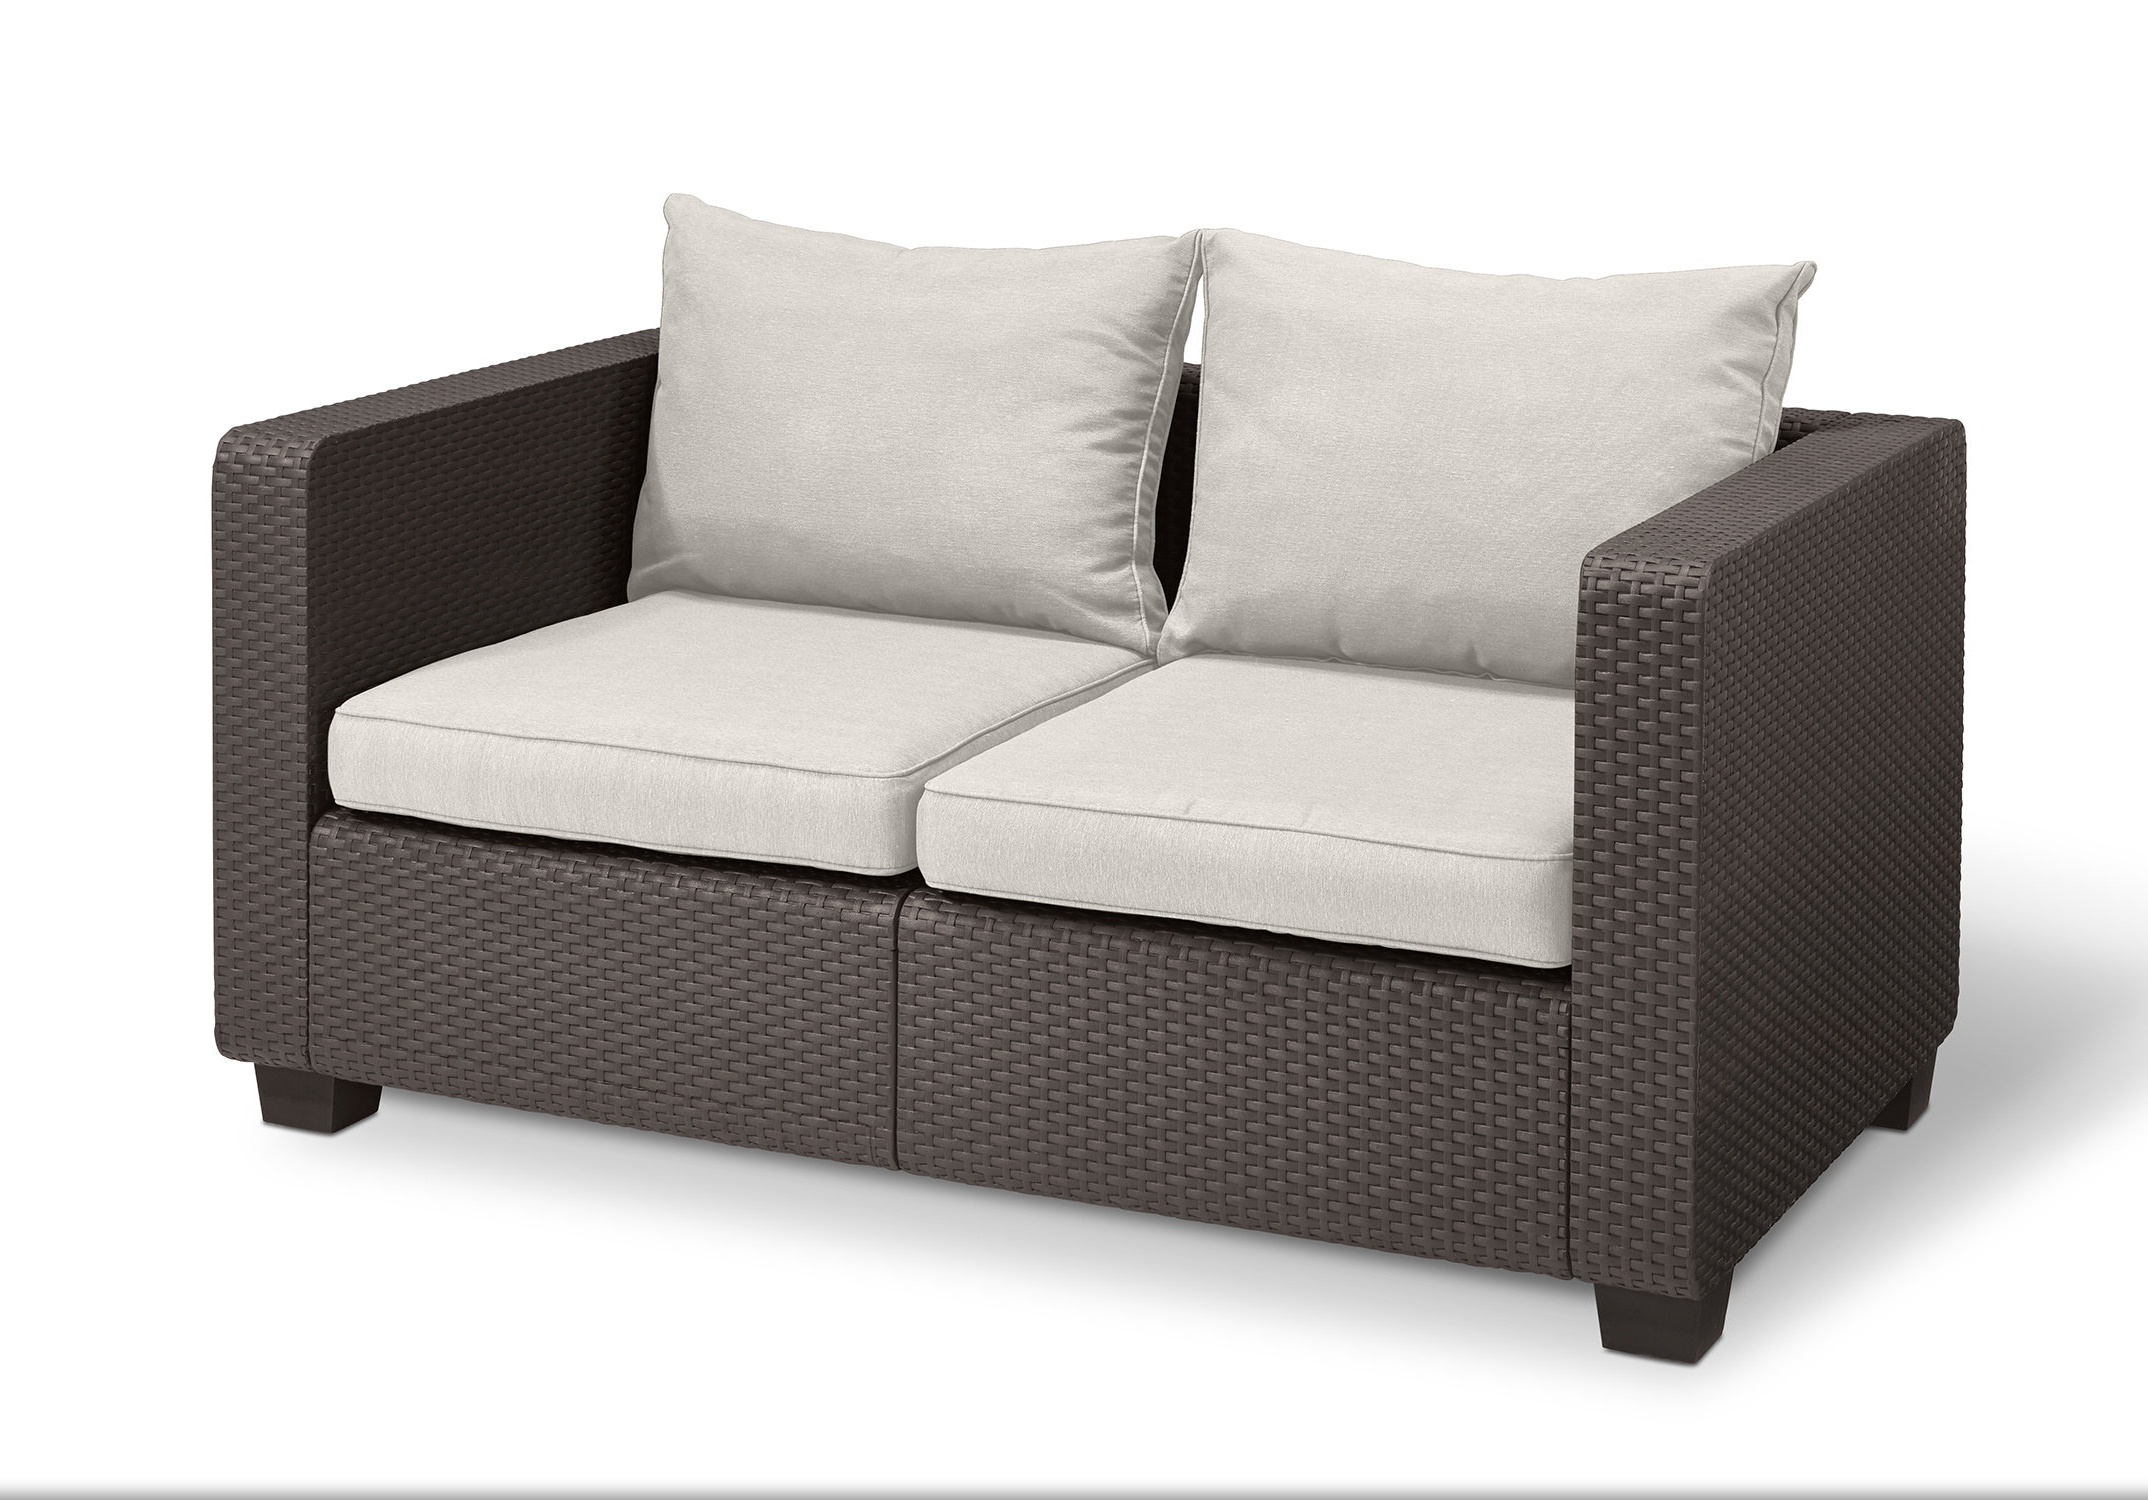 Halloran Loveseat With Sunbrella Cushions In Most Recently Released Mendelson Loveseats With Cushion (View 7 of 20)